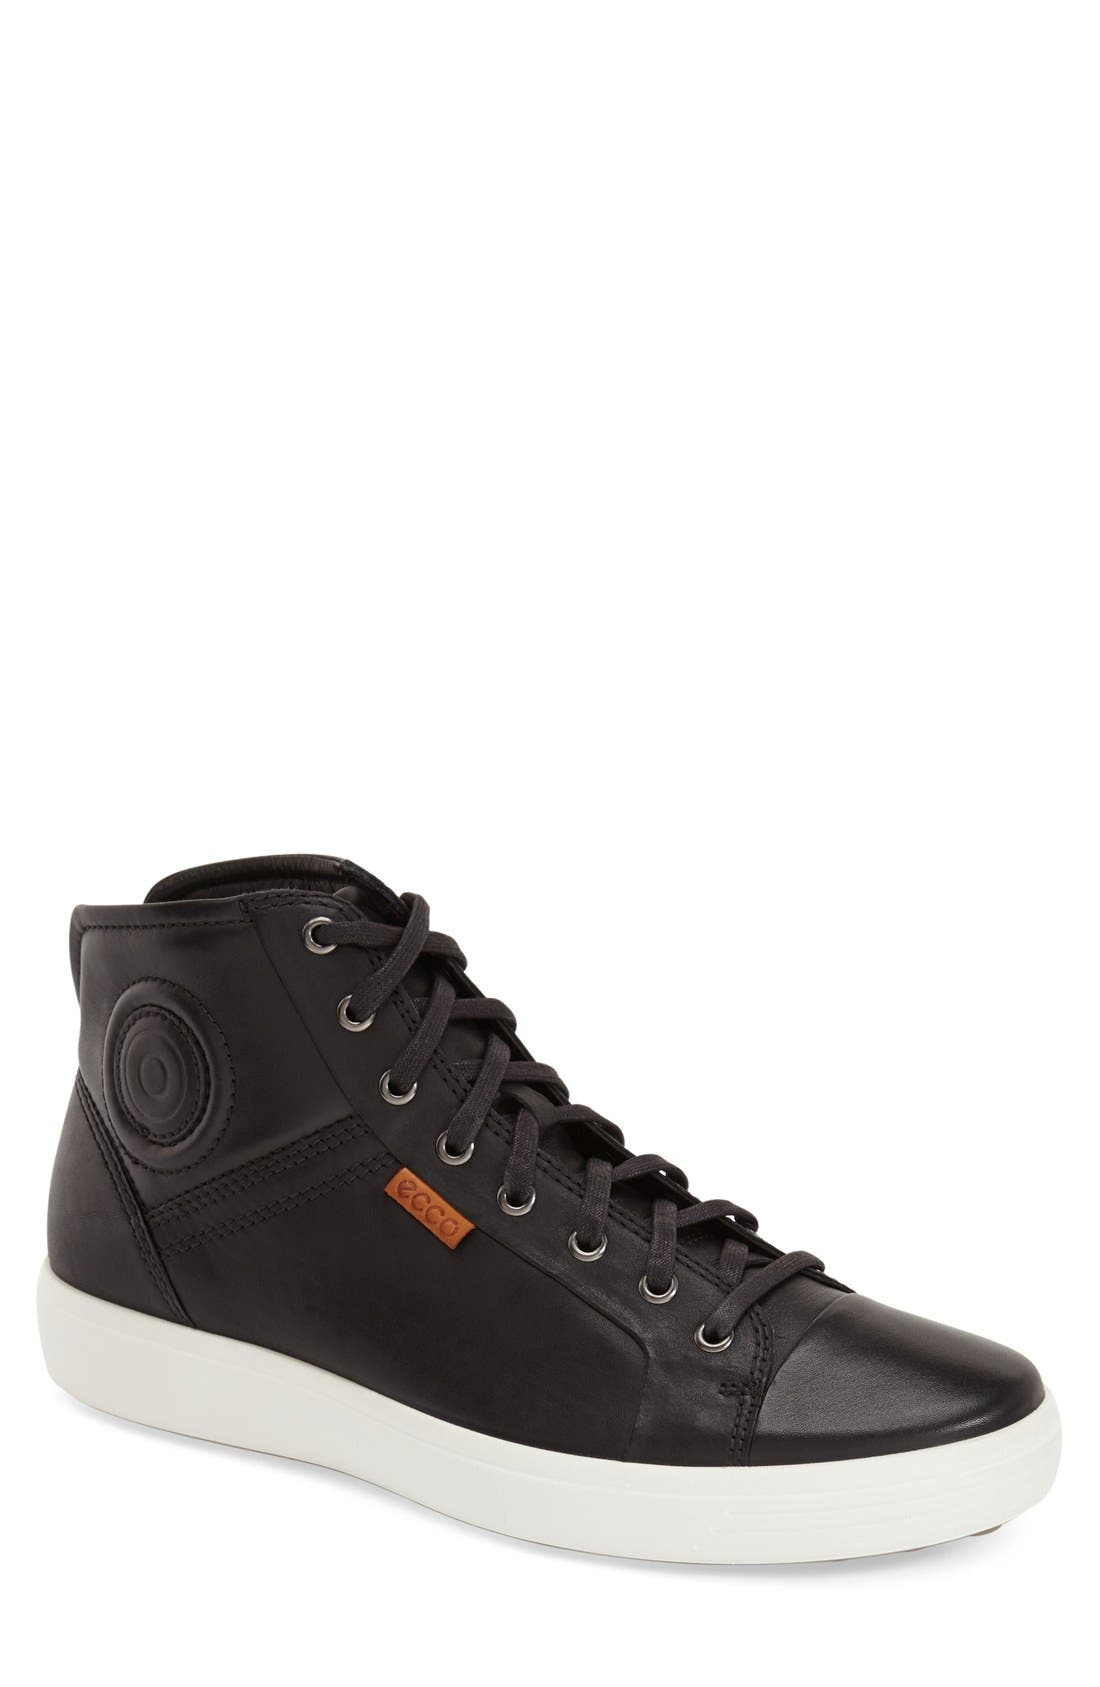 'Soft 7' High Top Sneaker,                             Main thumbnail 1, color,                             BLACK LEATHER